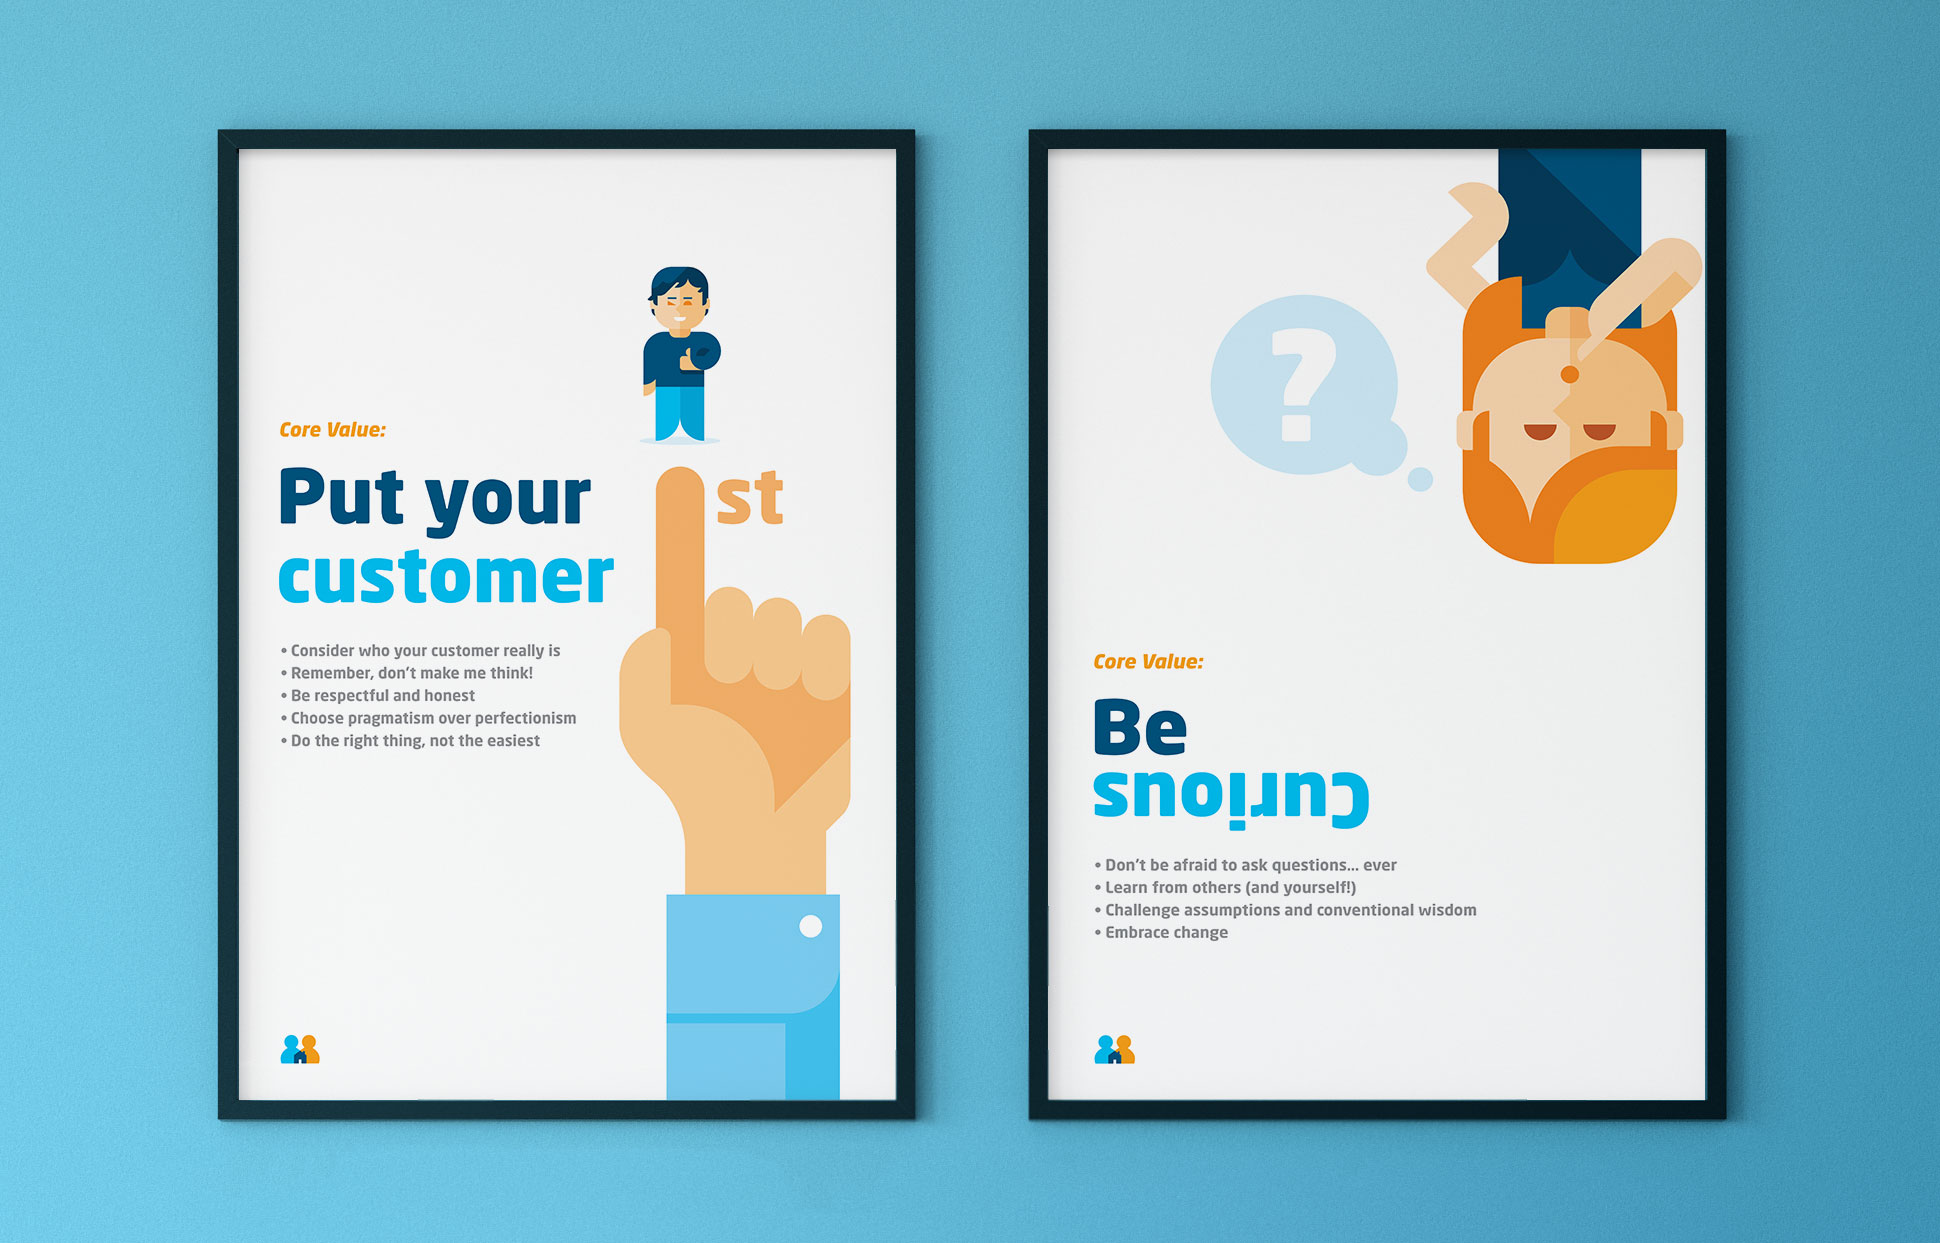 SpareRoom Brand Values Posters by Dan Forster